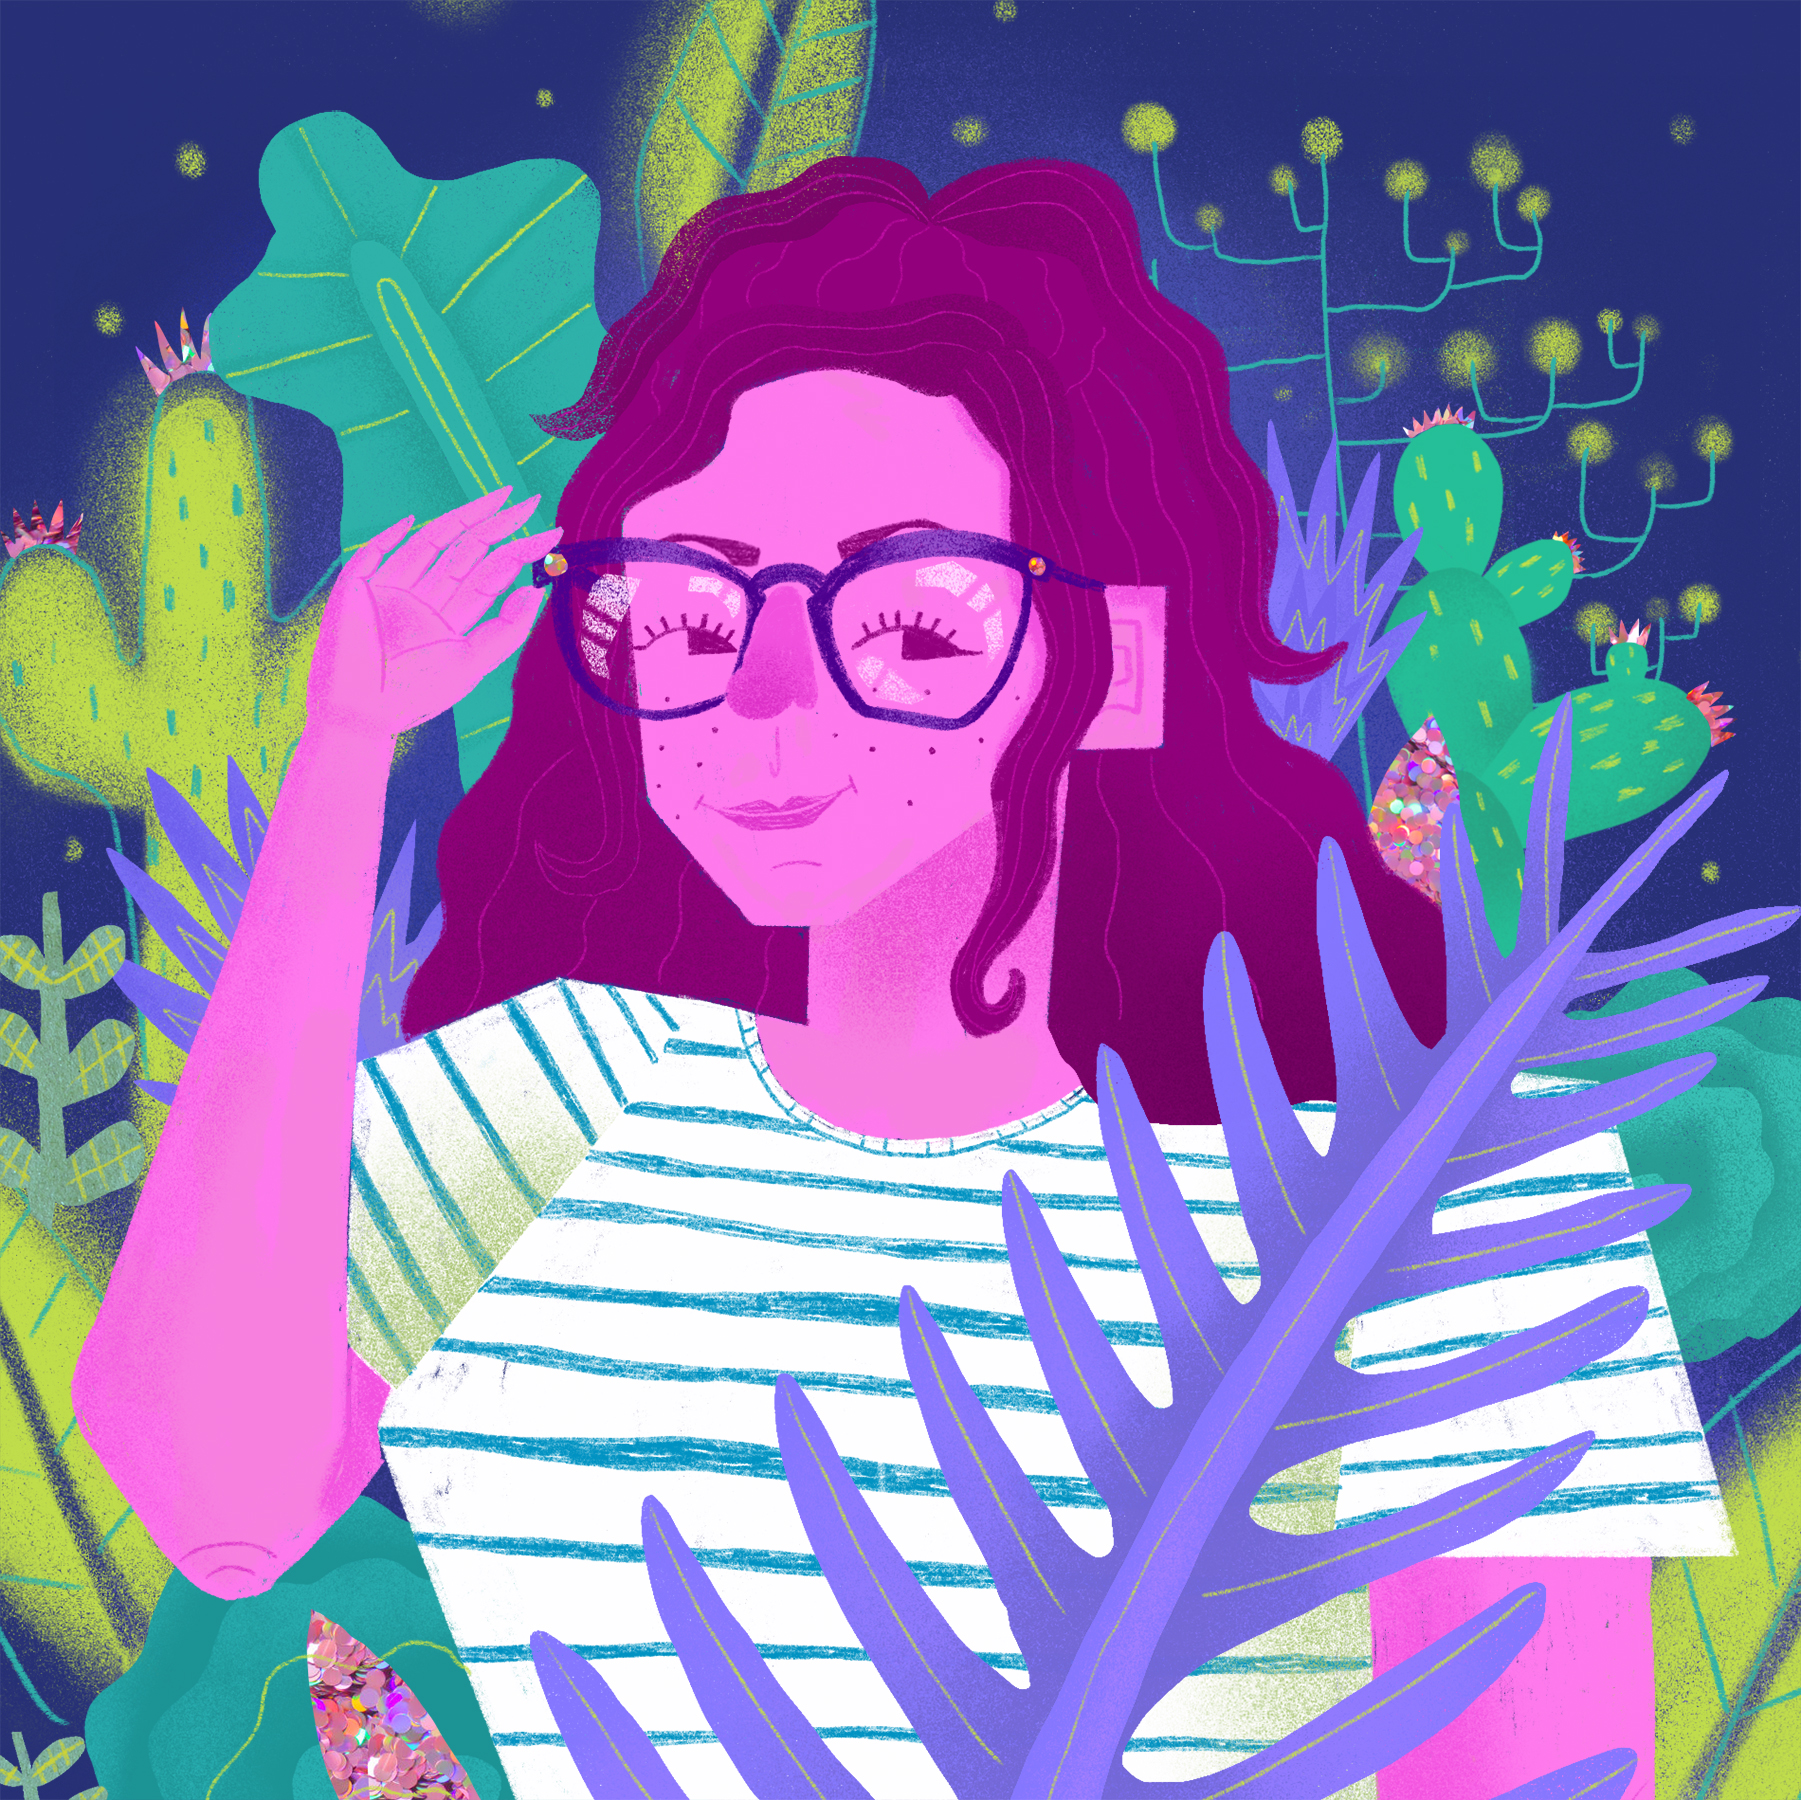 Self Portrait in Alien Botany , digital print with acrylic and colored pencil, mounted on wood